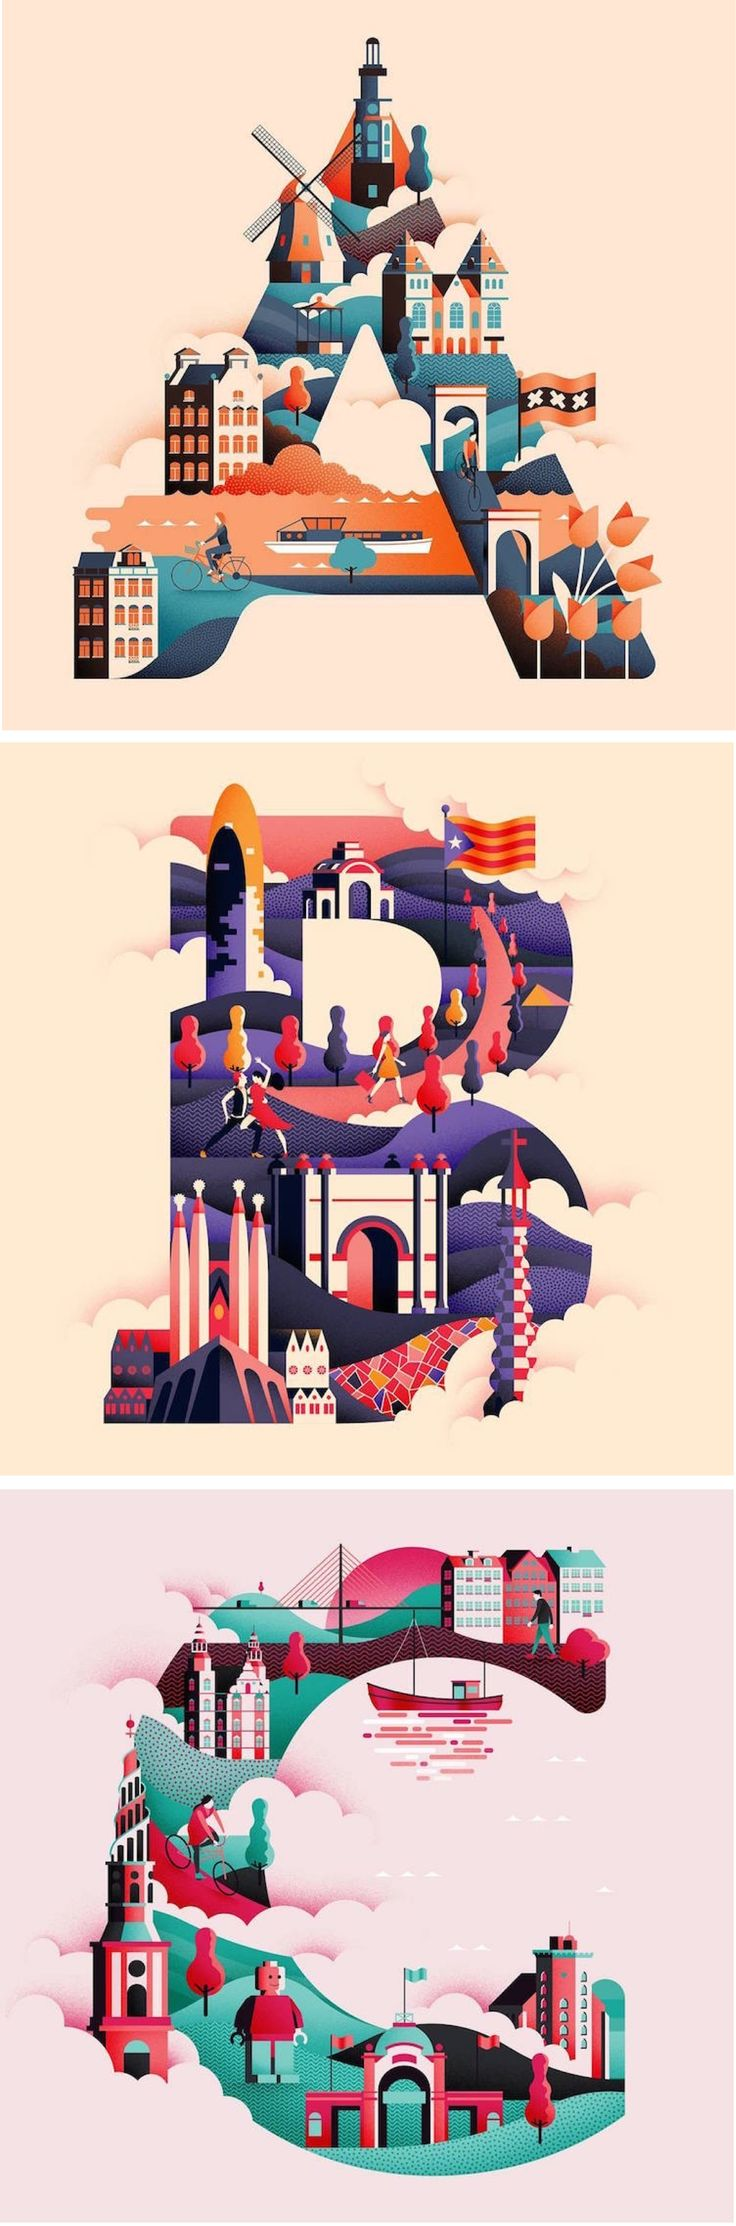 This clever typographic collection uses each letter in the alphabet to visually represent a different city around the world.